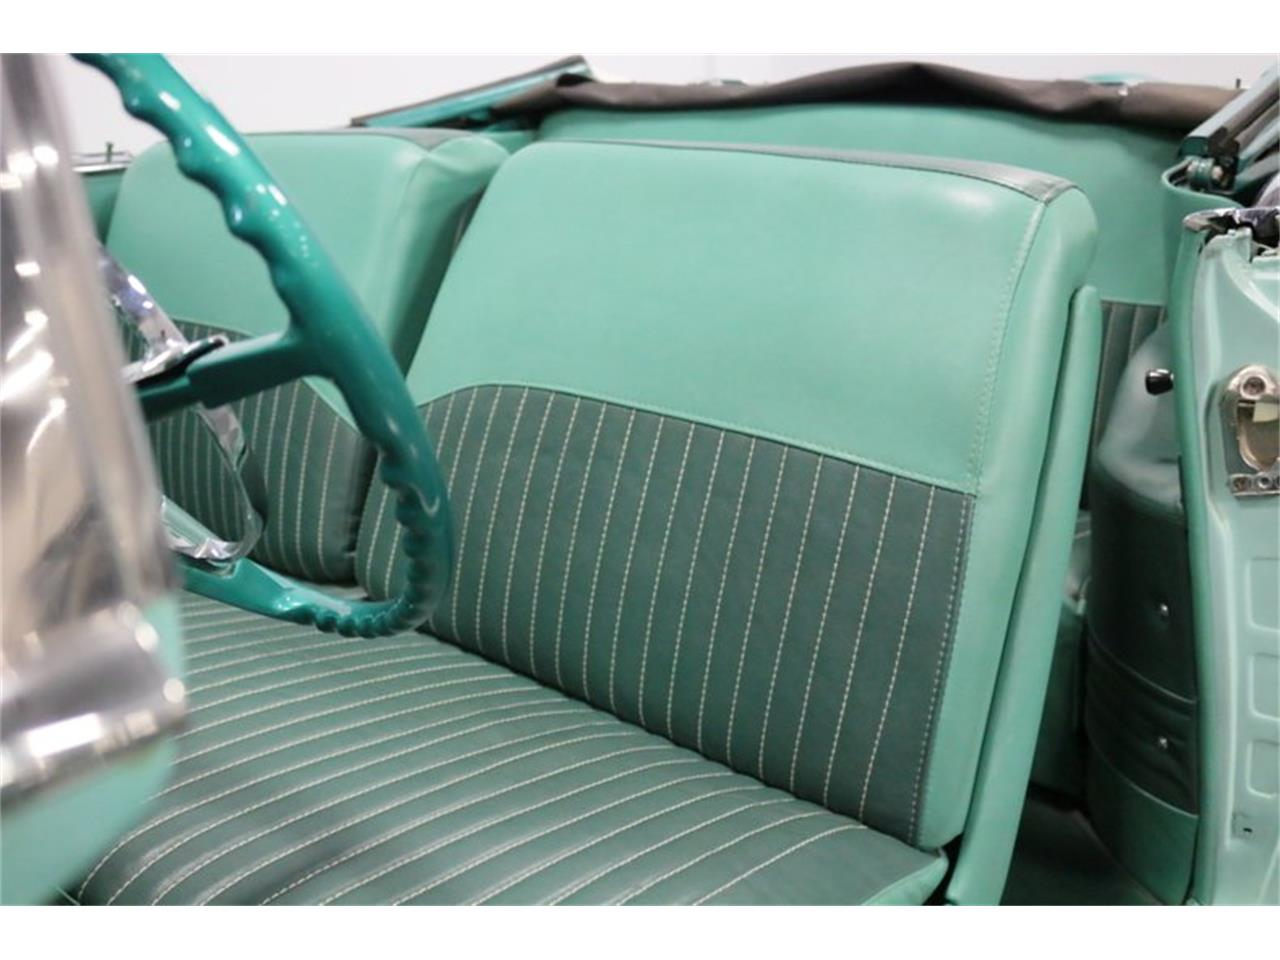 Large Picture of 1955 Chevrolet Bel Air located in Ft Worth Texas Offered by Streetside Classics - Dallas / Fort Worth - QAW8